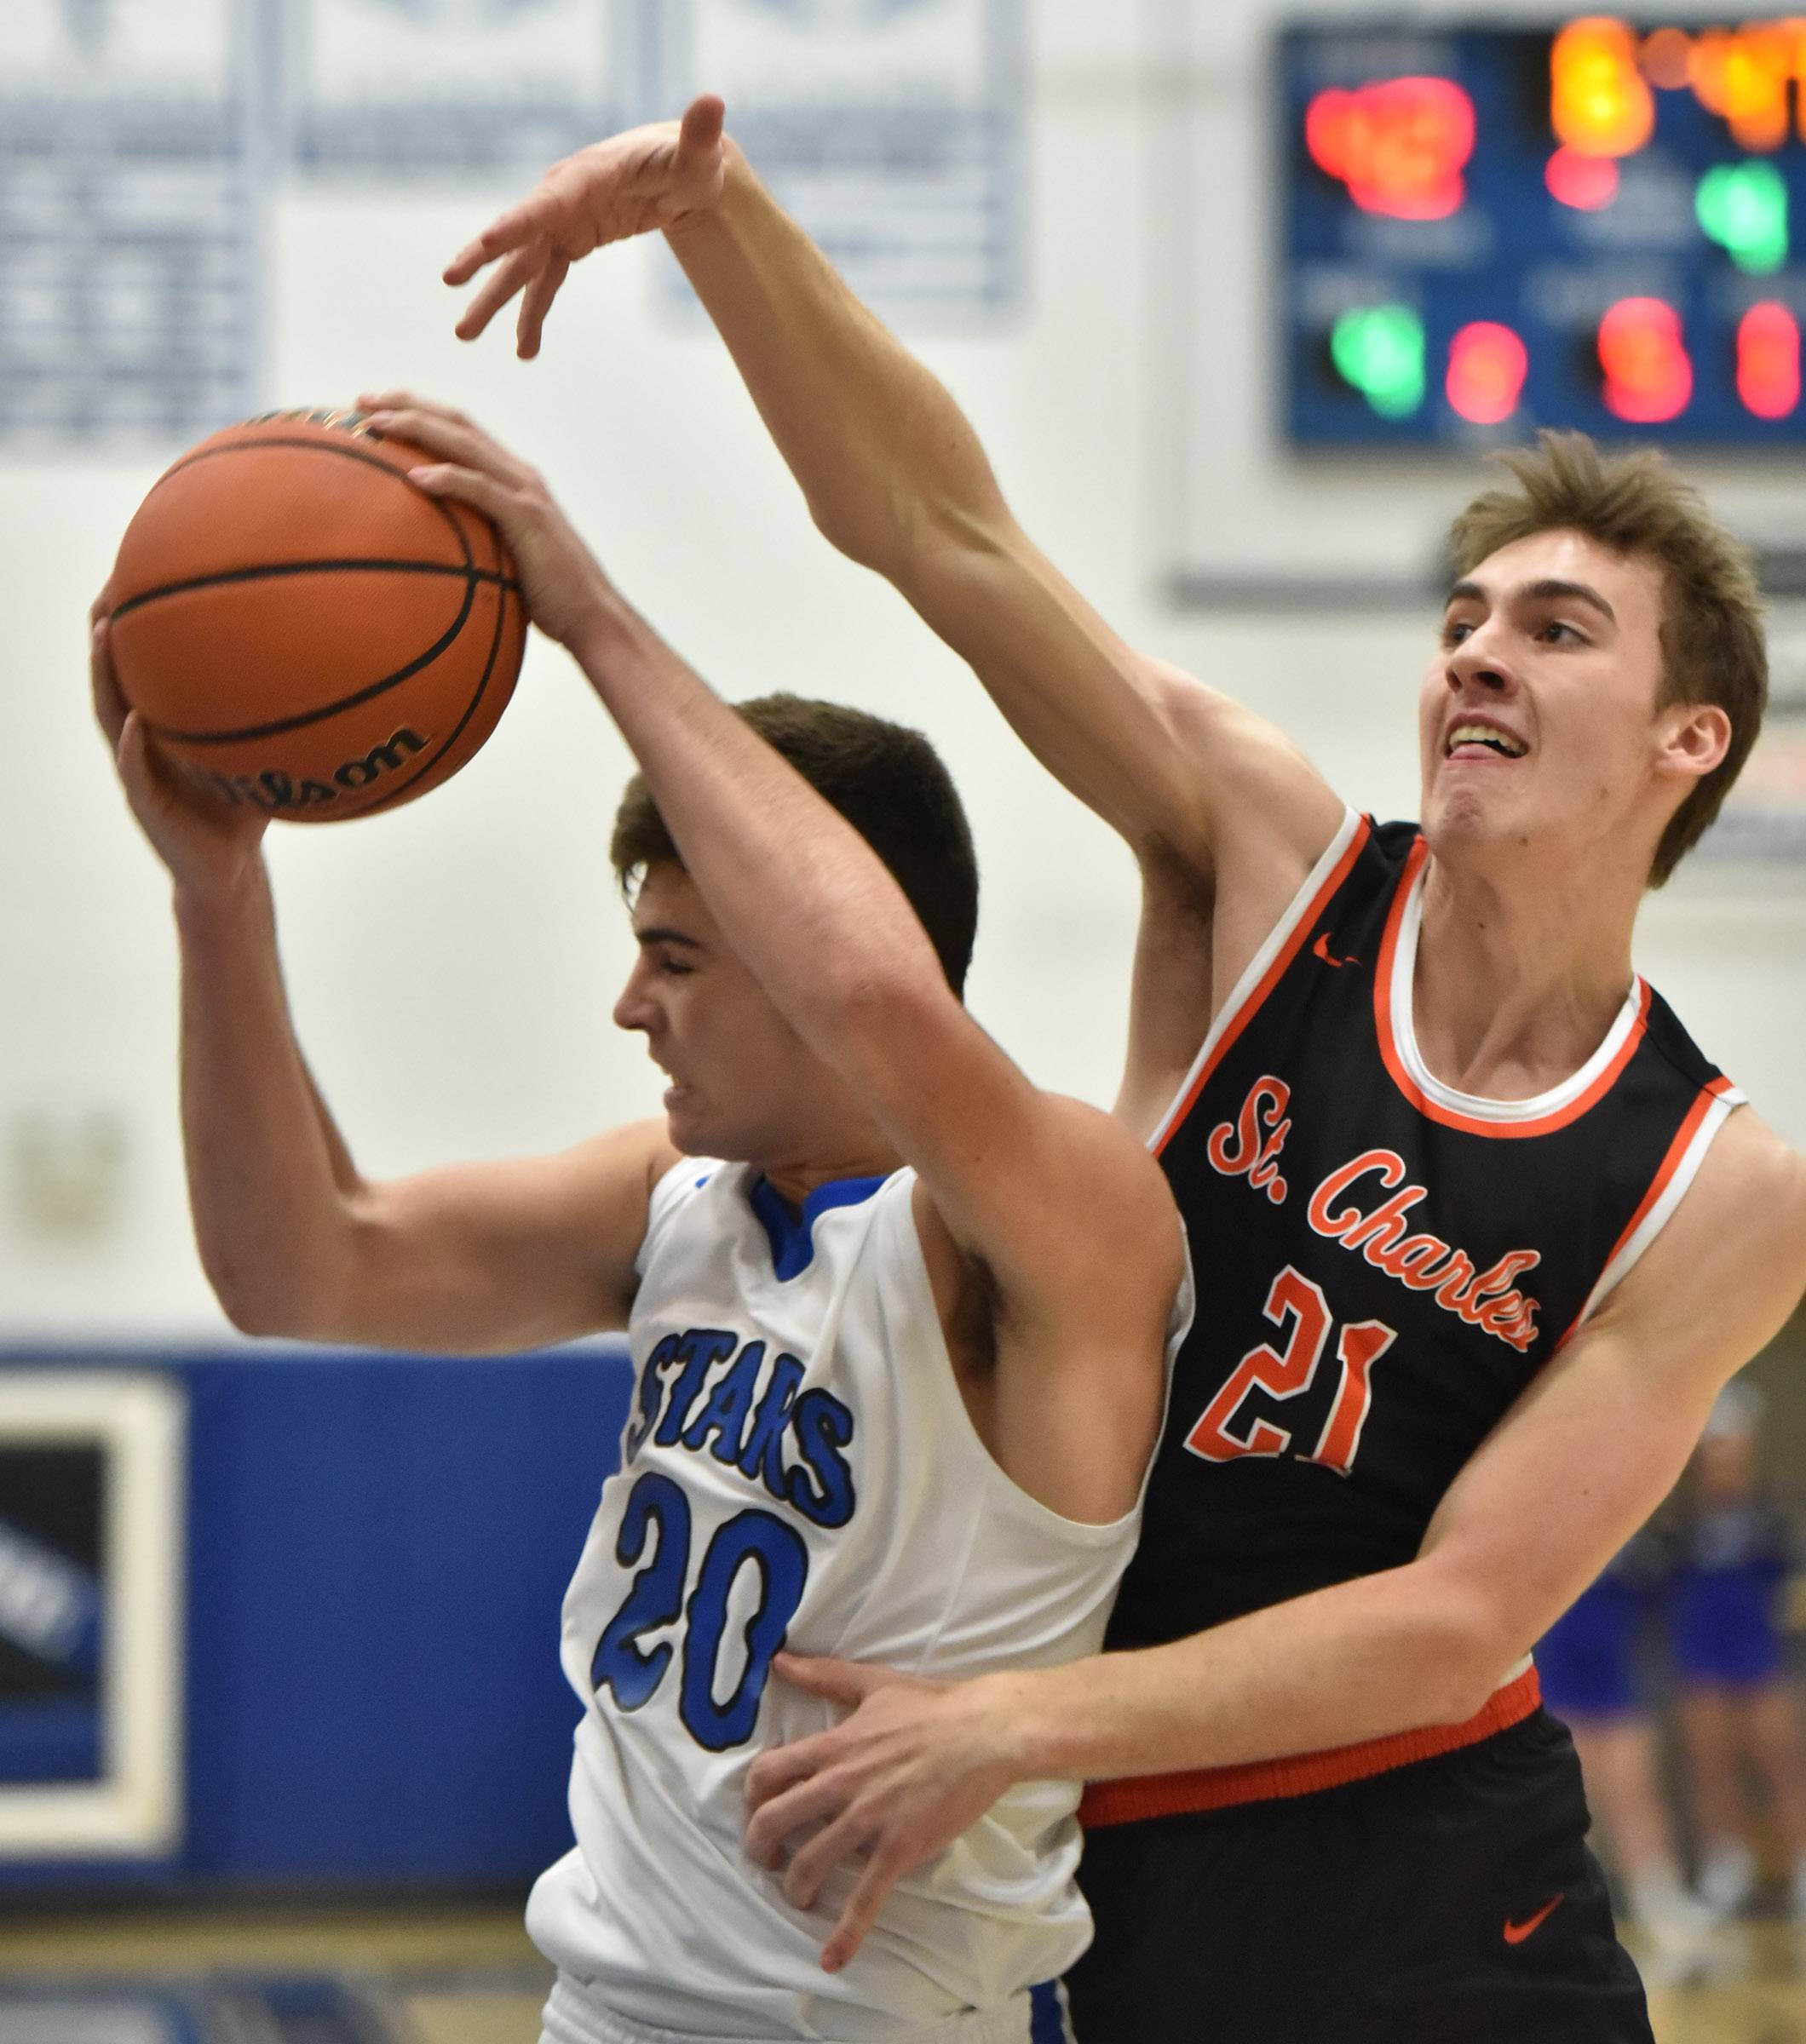 St. Charles North's Kyle King pulls in a rebound against St. Charles East's Wade Kyle Tuesday in St. Charles.